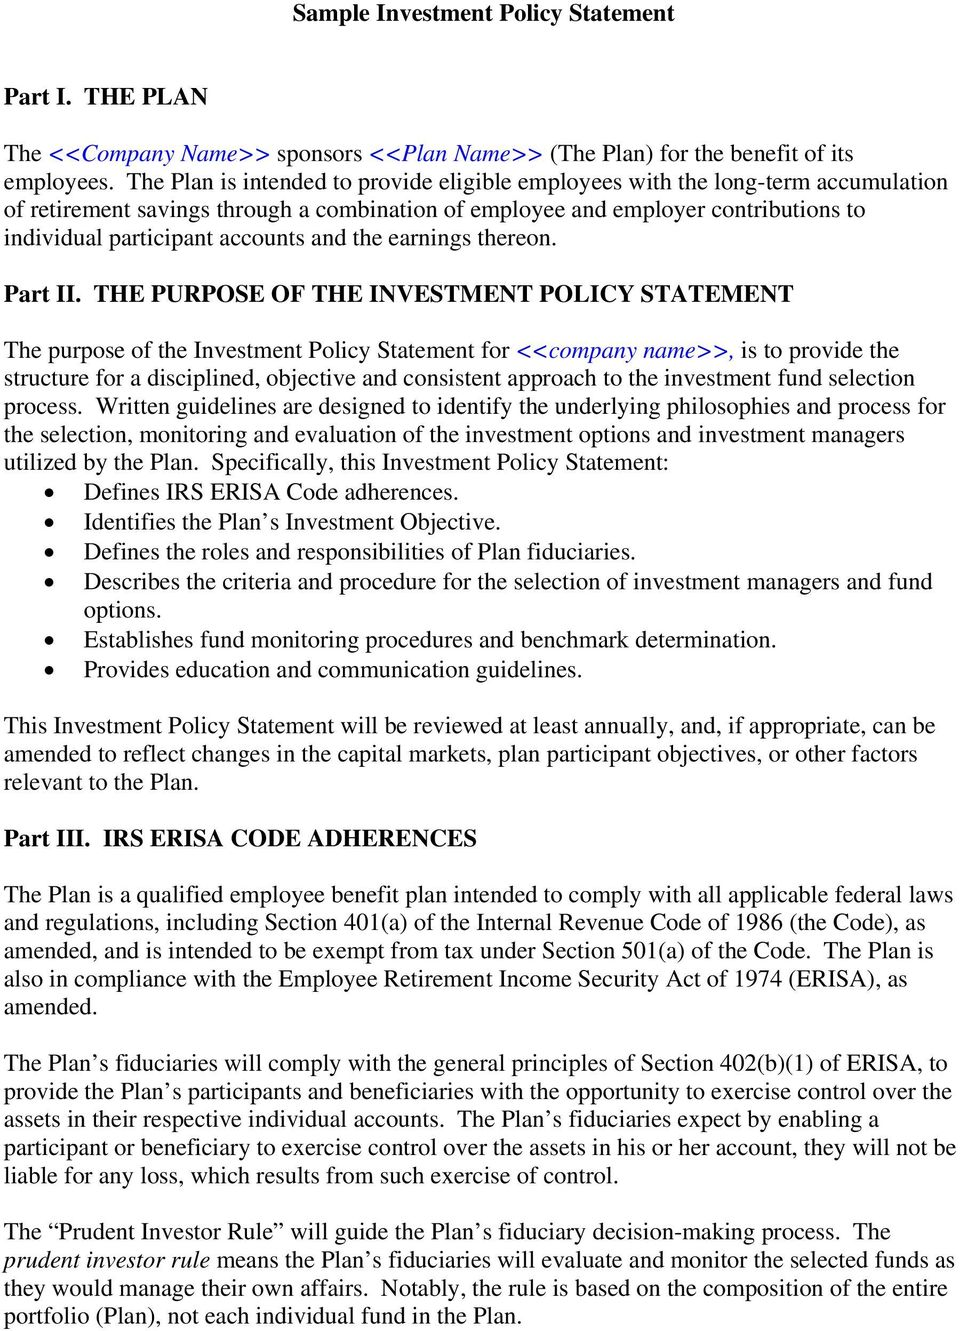 investment policy statement for 401k plans